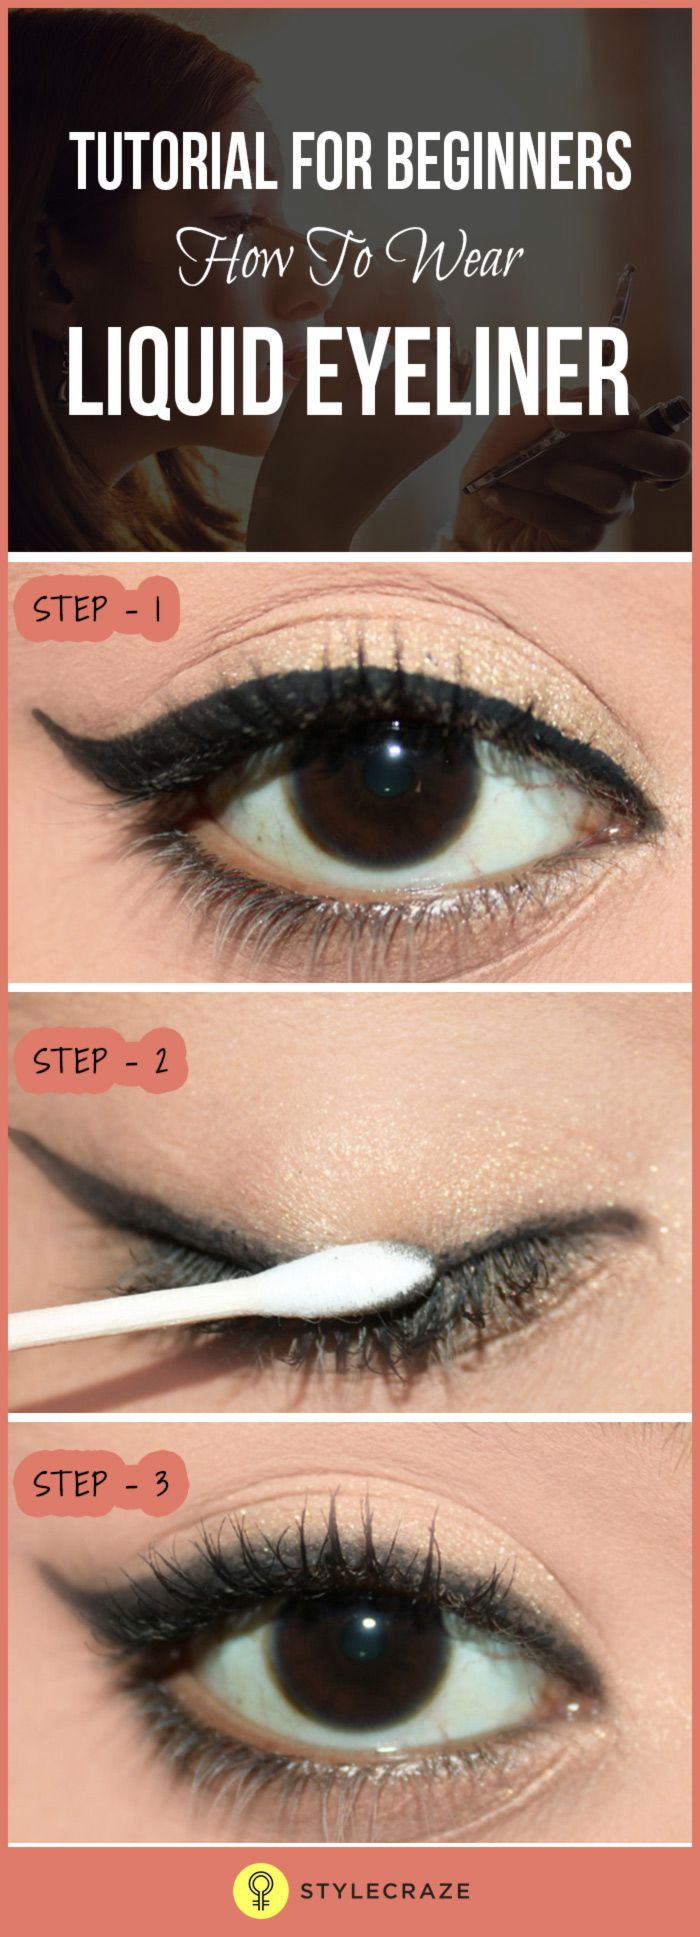 Liquid eyeliner contours and gives a precise definition to our eyes. Simply said wearing liquid eyeliner will give you the WOW effect! However, the task of getting it on perfectly is definitely a tricky task, especially if you have shaky hands. With that, I must admit that if there is one makeup tool that I haven't totally mastered, it is applying my liquid eyeliner. Either it comes out too thick or too thin, or looks like it has been lined by a five-year-old kid. A total disaster.